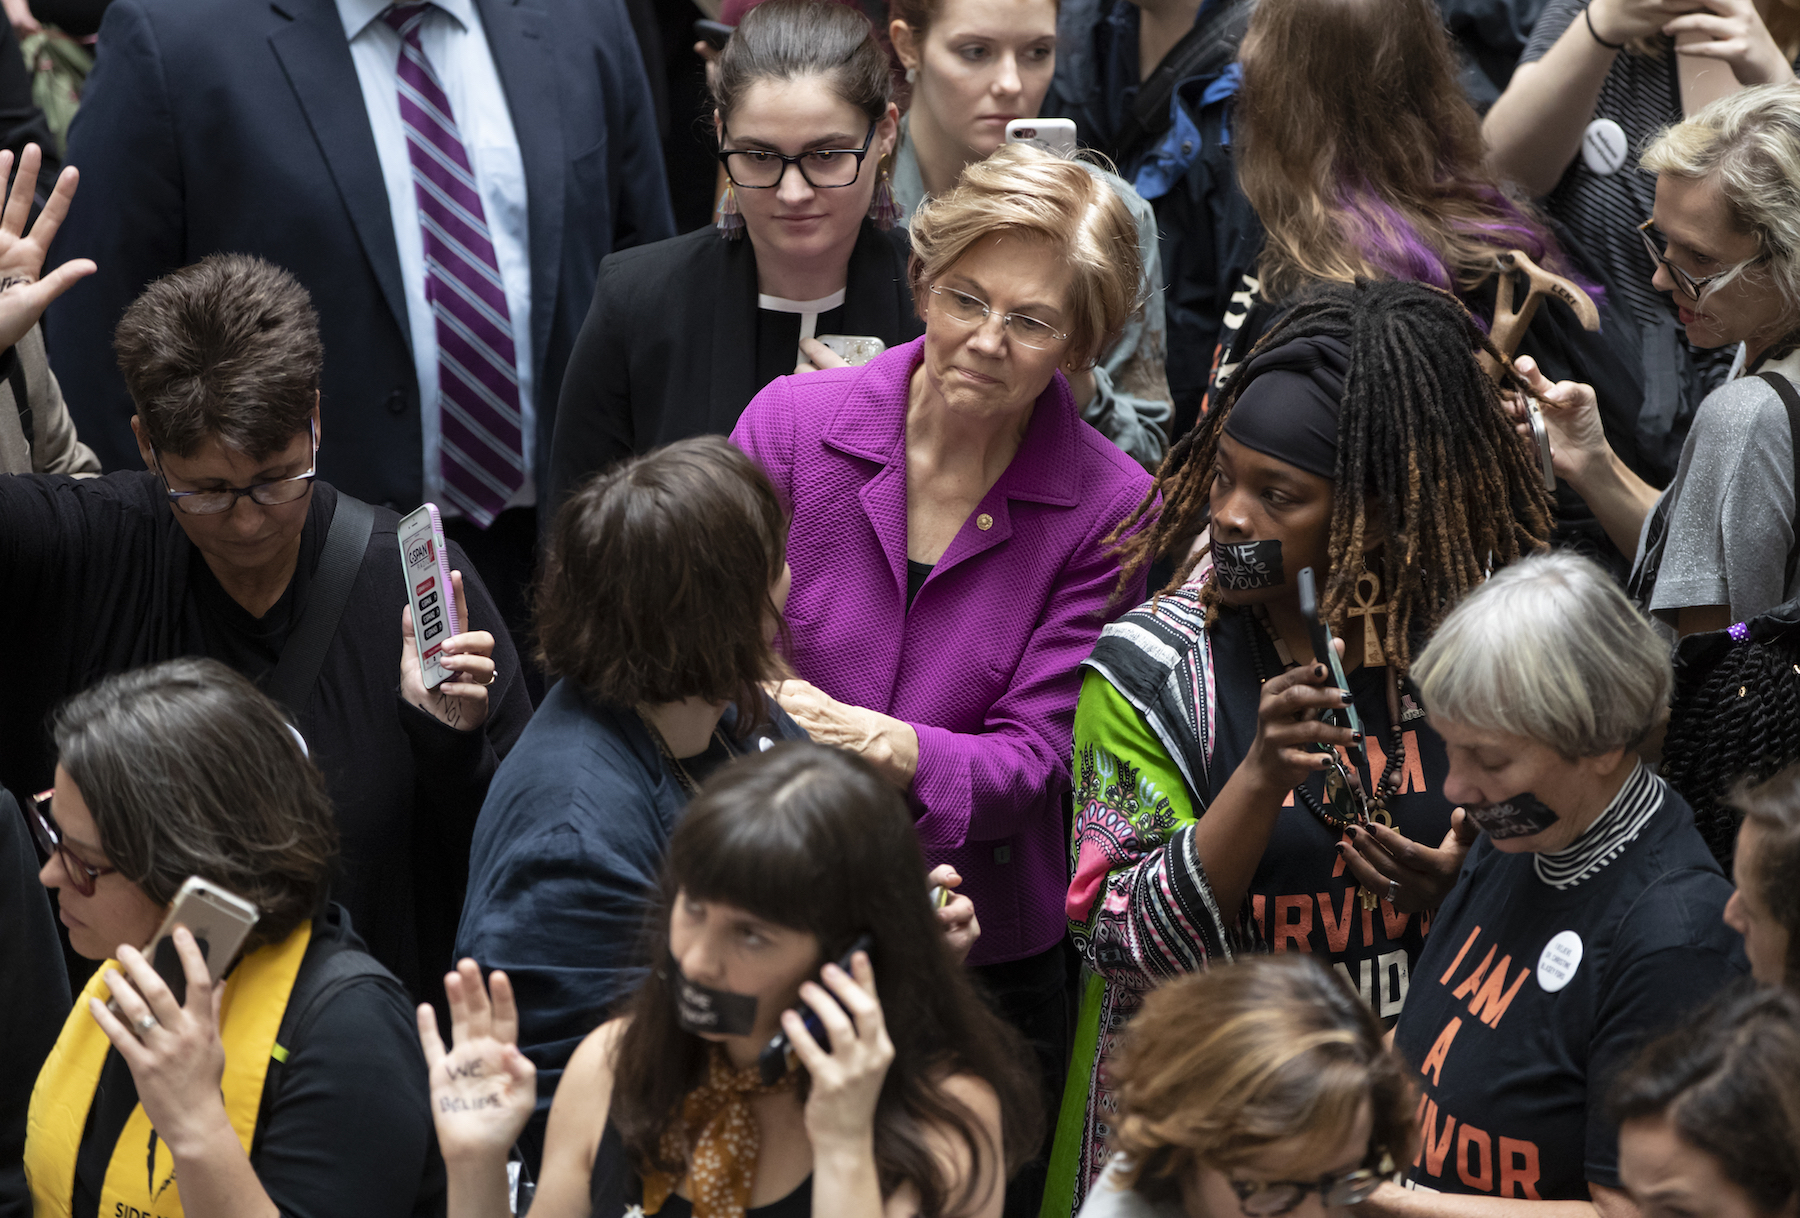 "<div class=""meta image-caption""><div class=""origin-logo origin-image ap""><span>AP</span></div><span class=""caption-text"">Sen. Elizabeth Warren, D-Mass., a vocal critic of Supreme Court nominee Brett Kavanaugh over the sexual harassment allegations made against him, greets womens' rights activists. (AP Photo/J. Scott Applewhite)</span></div>"